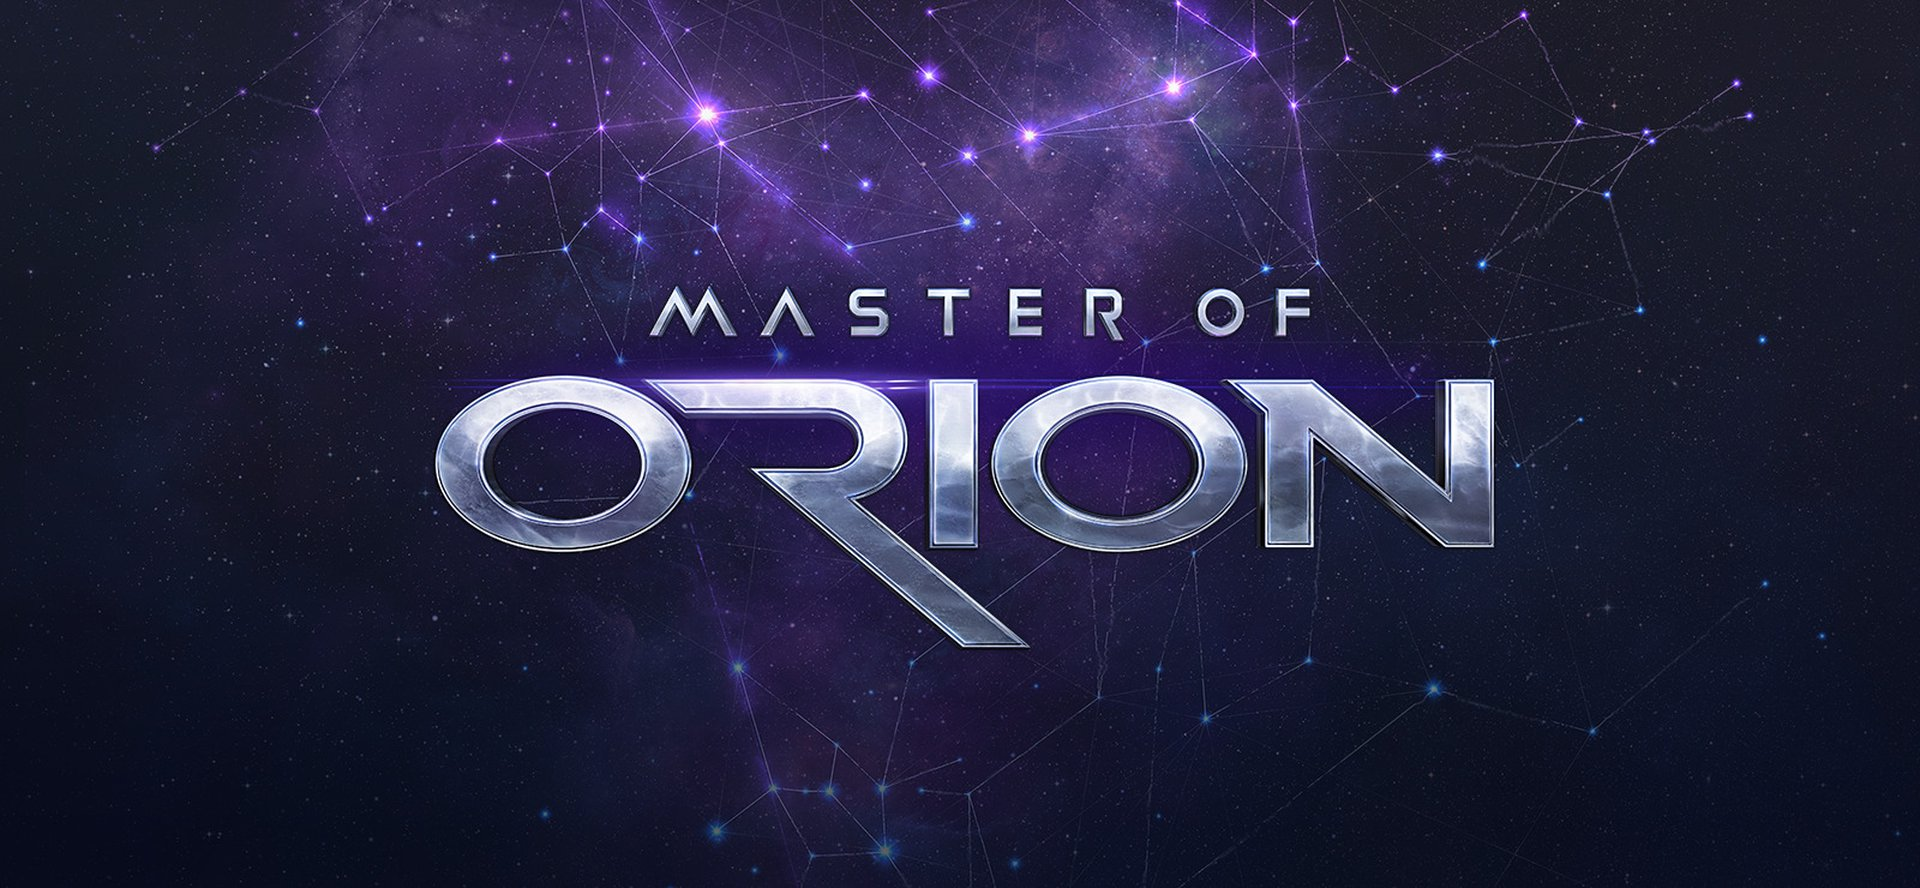 Master of Orion Video